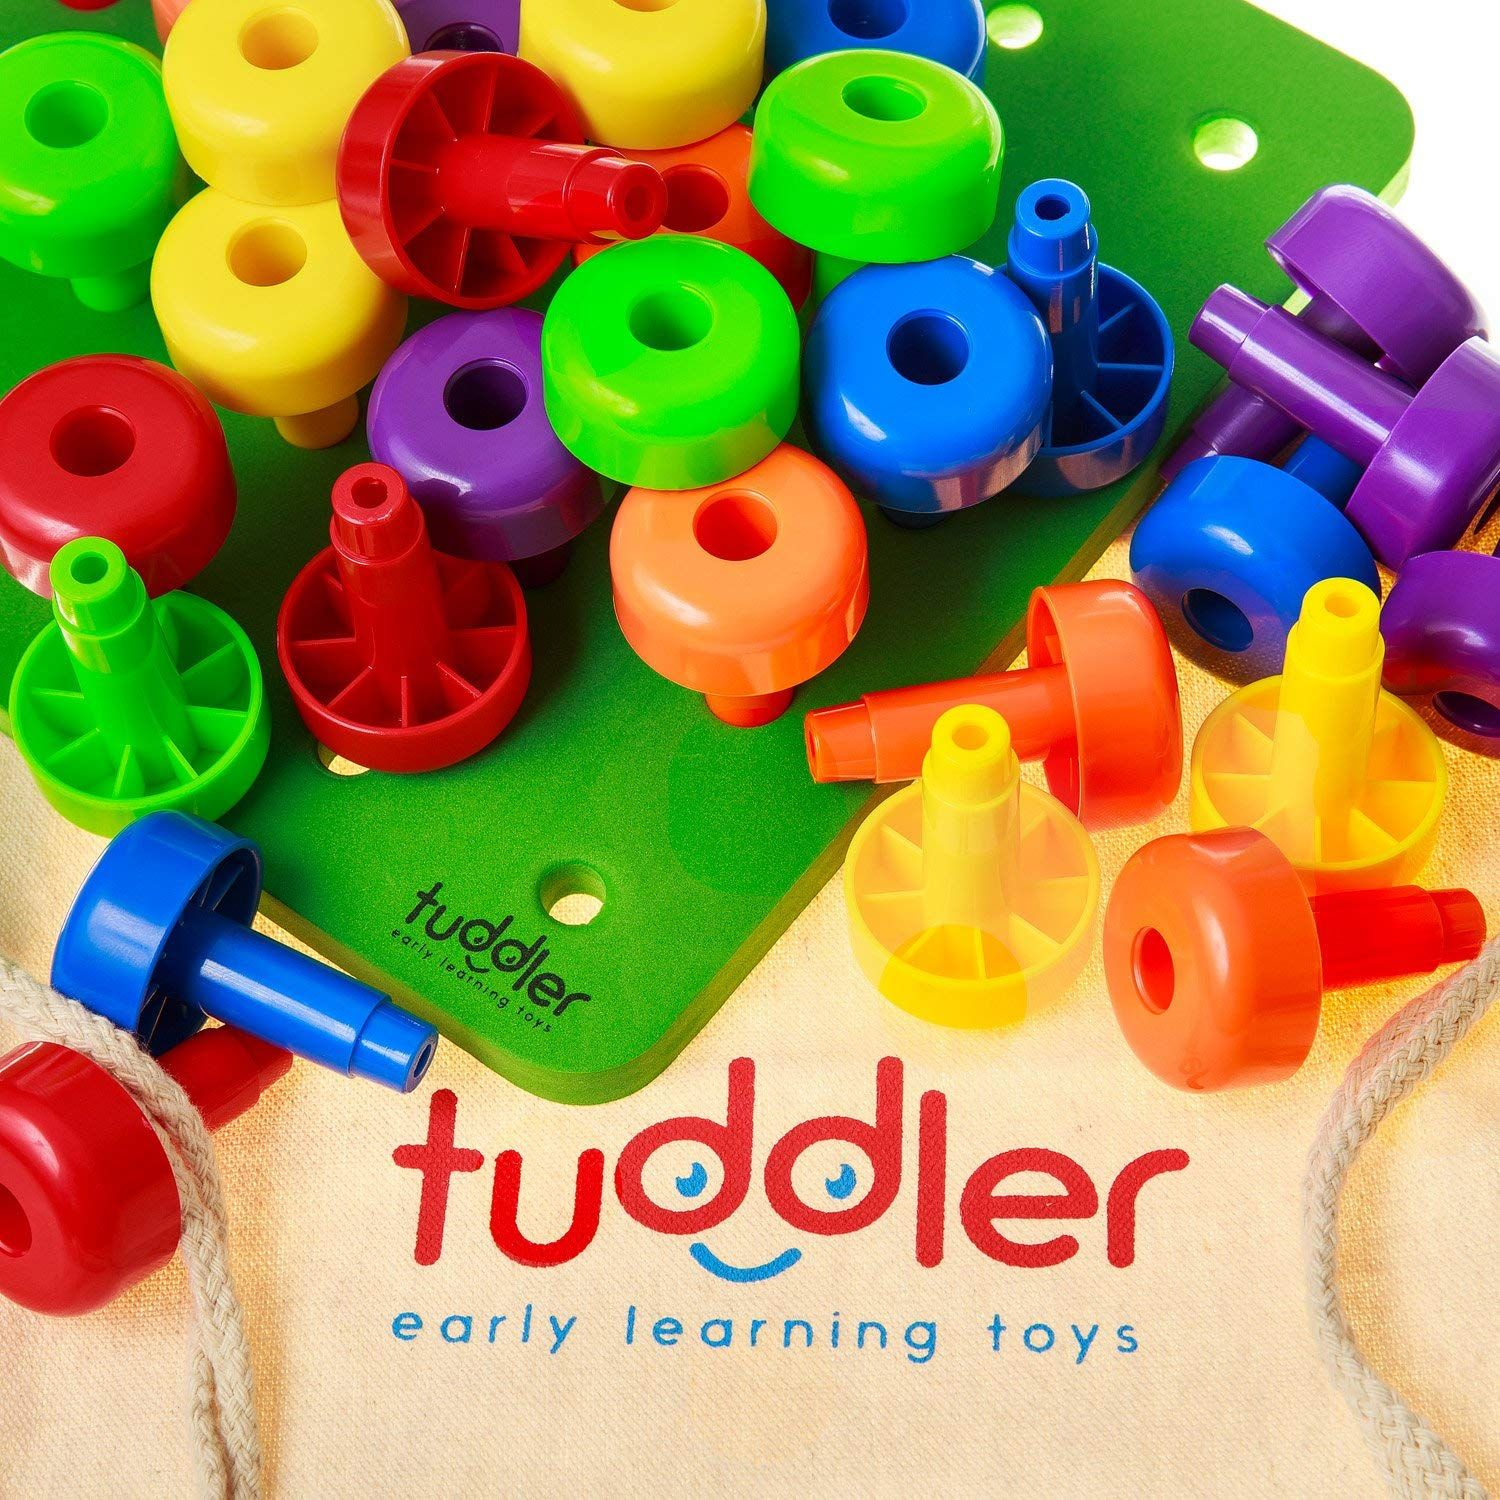 Educational Montessori Educational Toy Brightly Colored ...